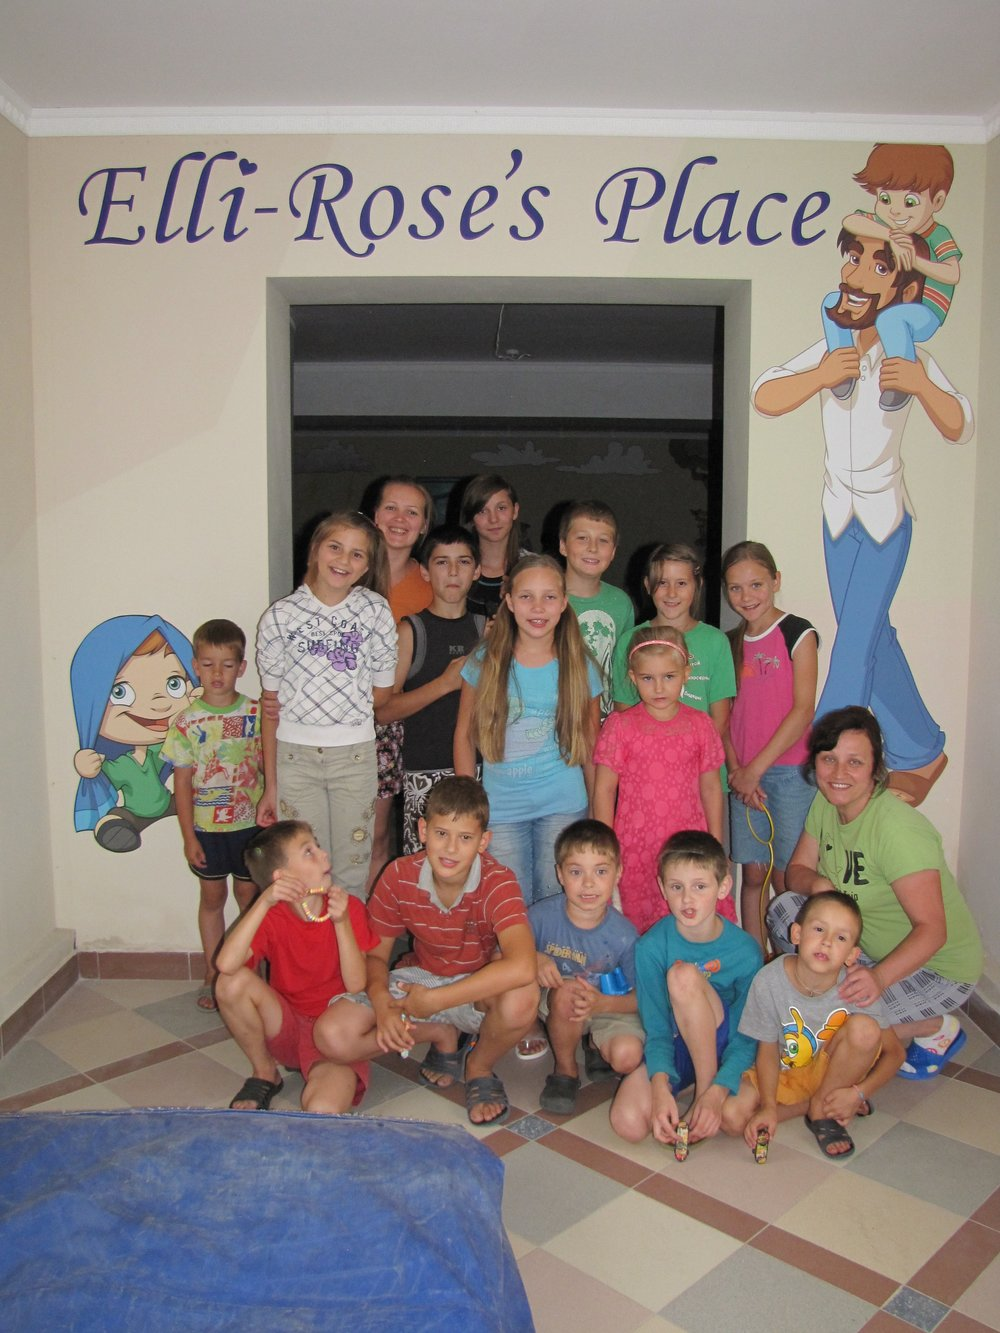 Elli-Rose's Place kids.jpg